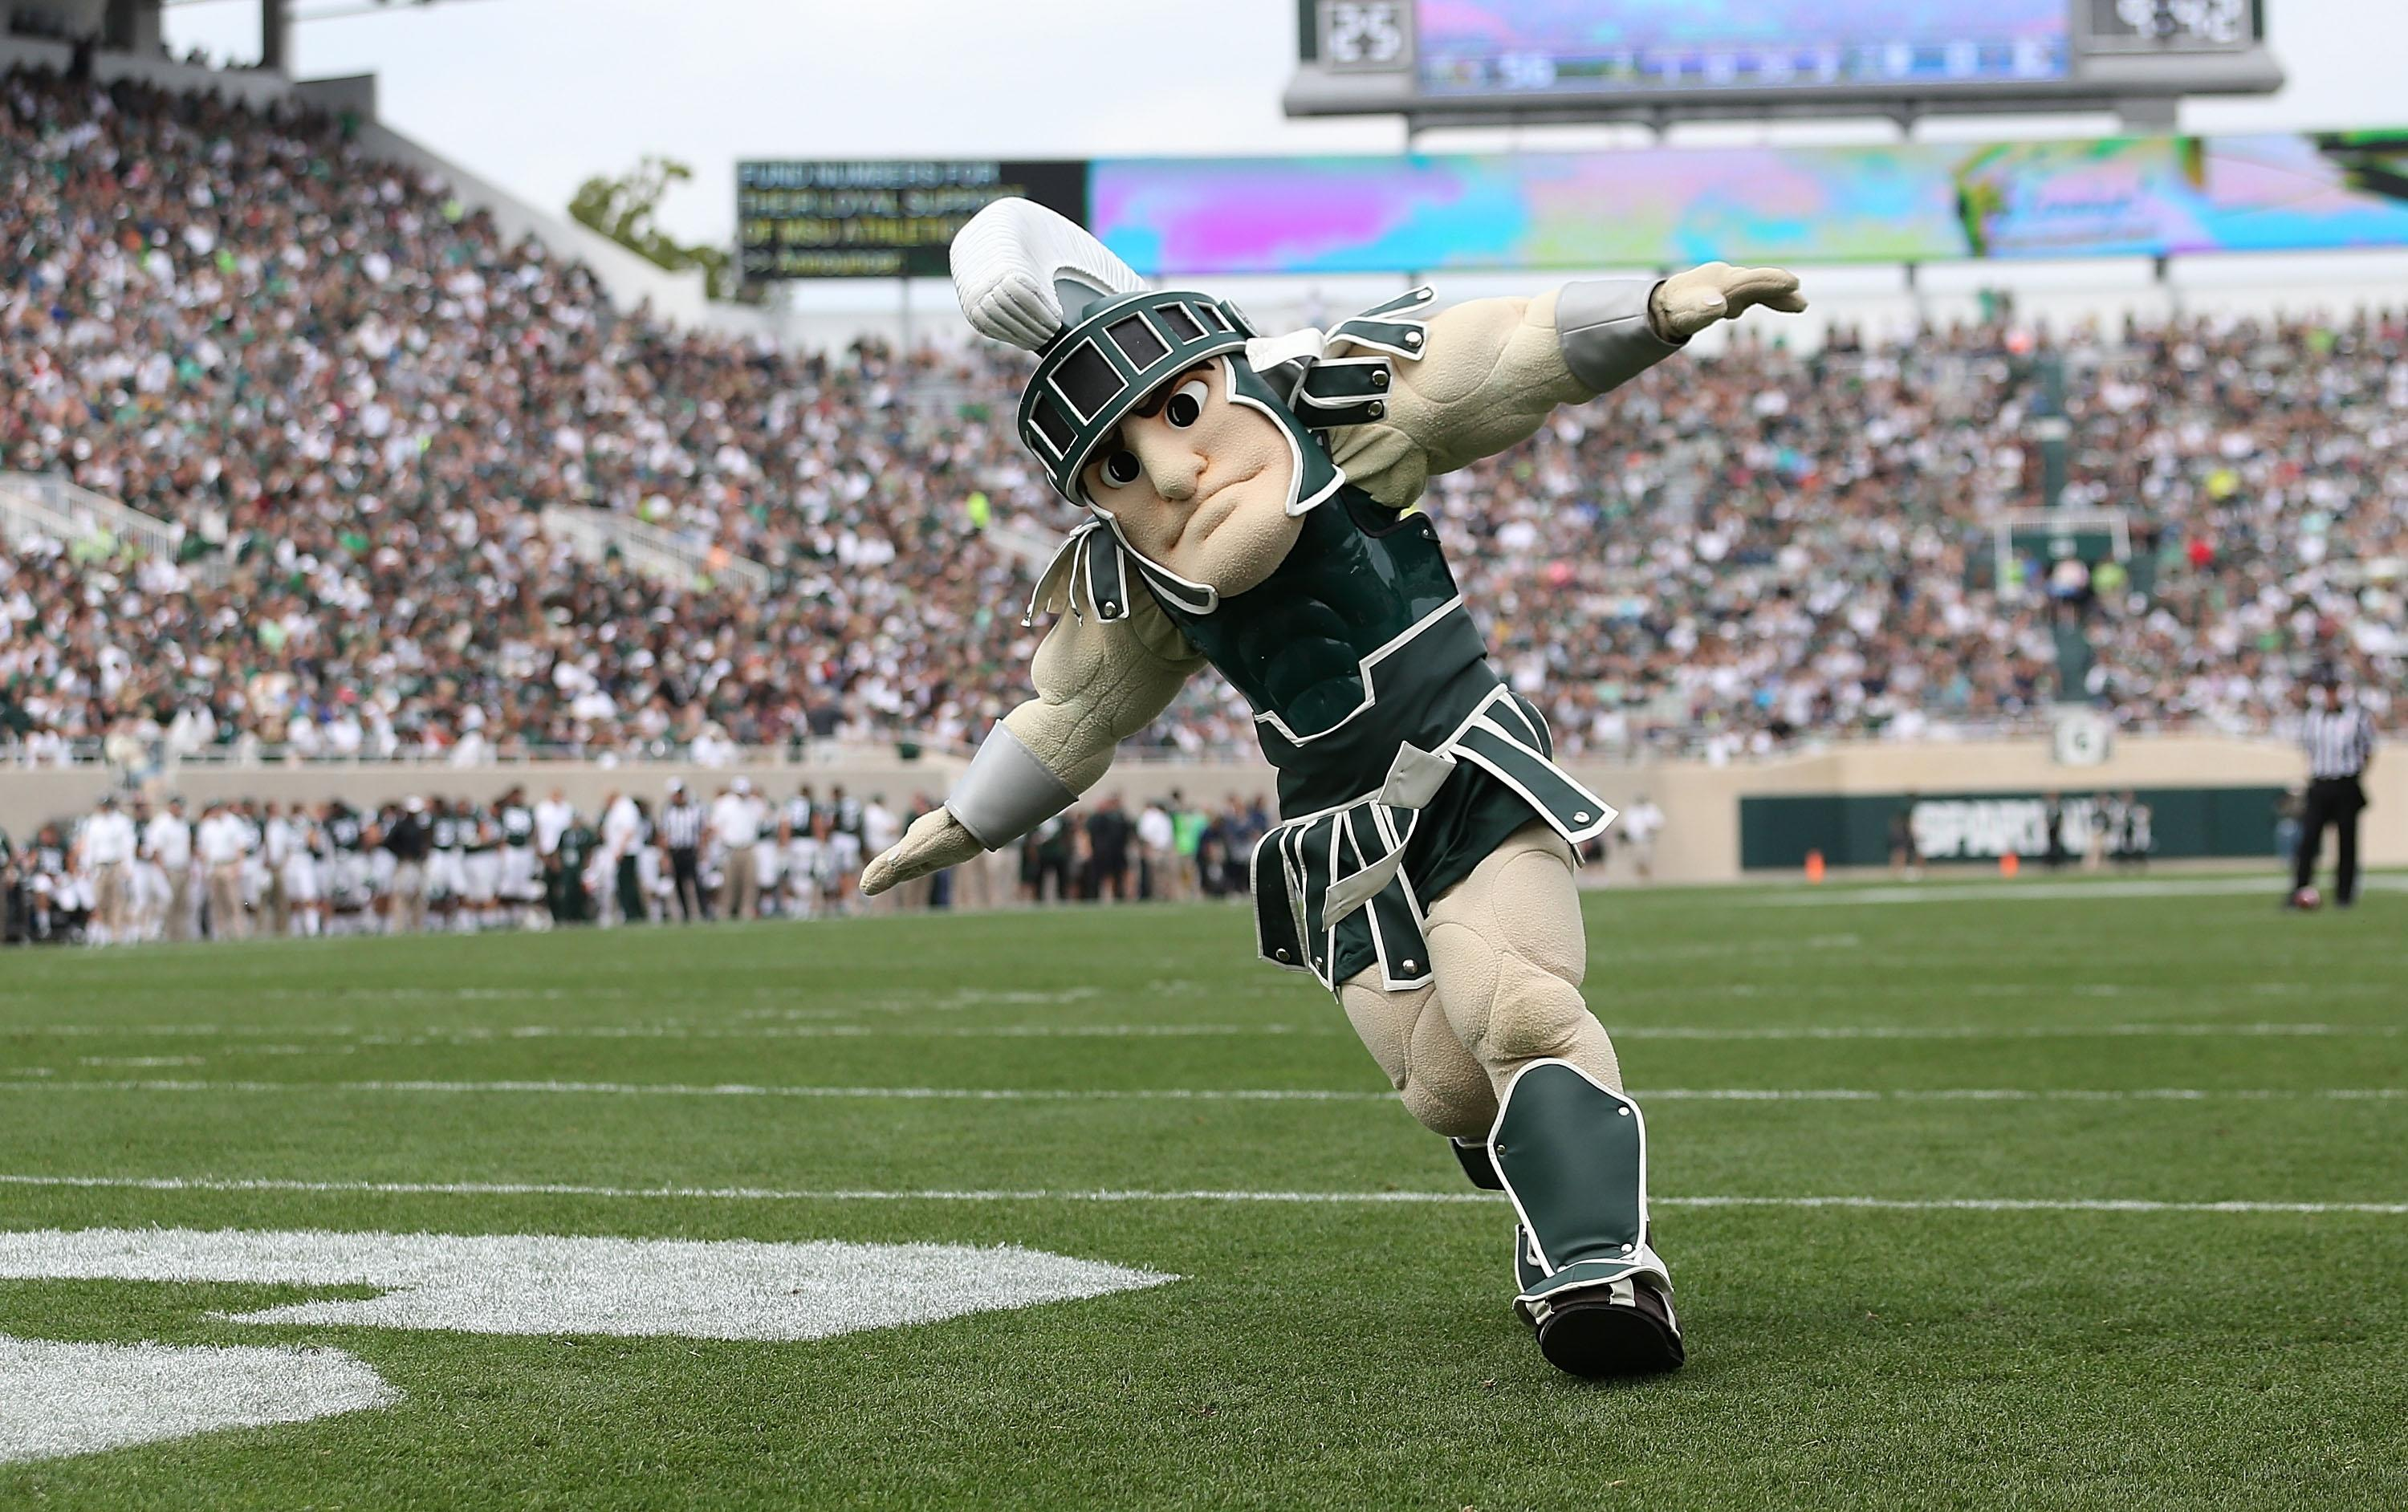 Michigan State's Drake Martinez wins Big Ten appeal